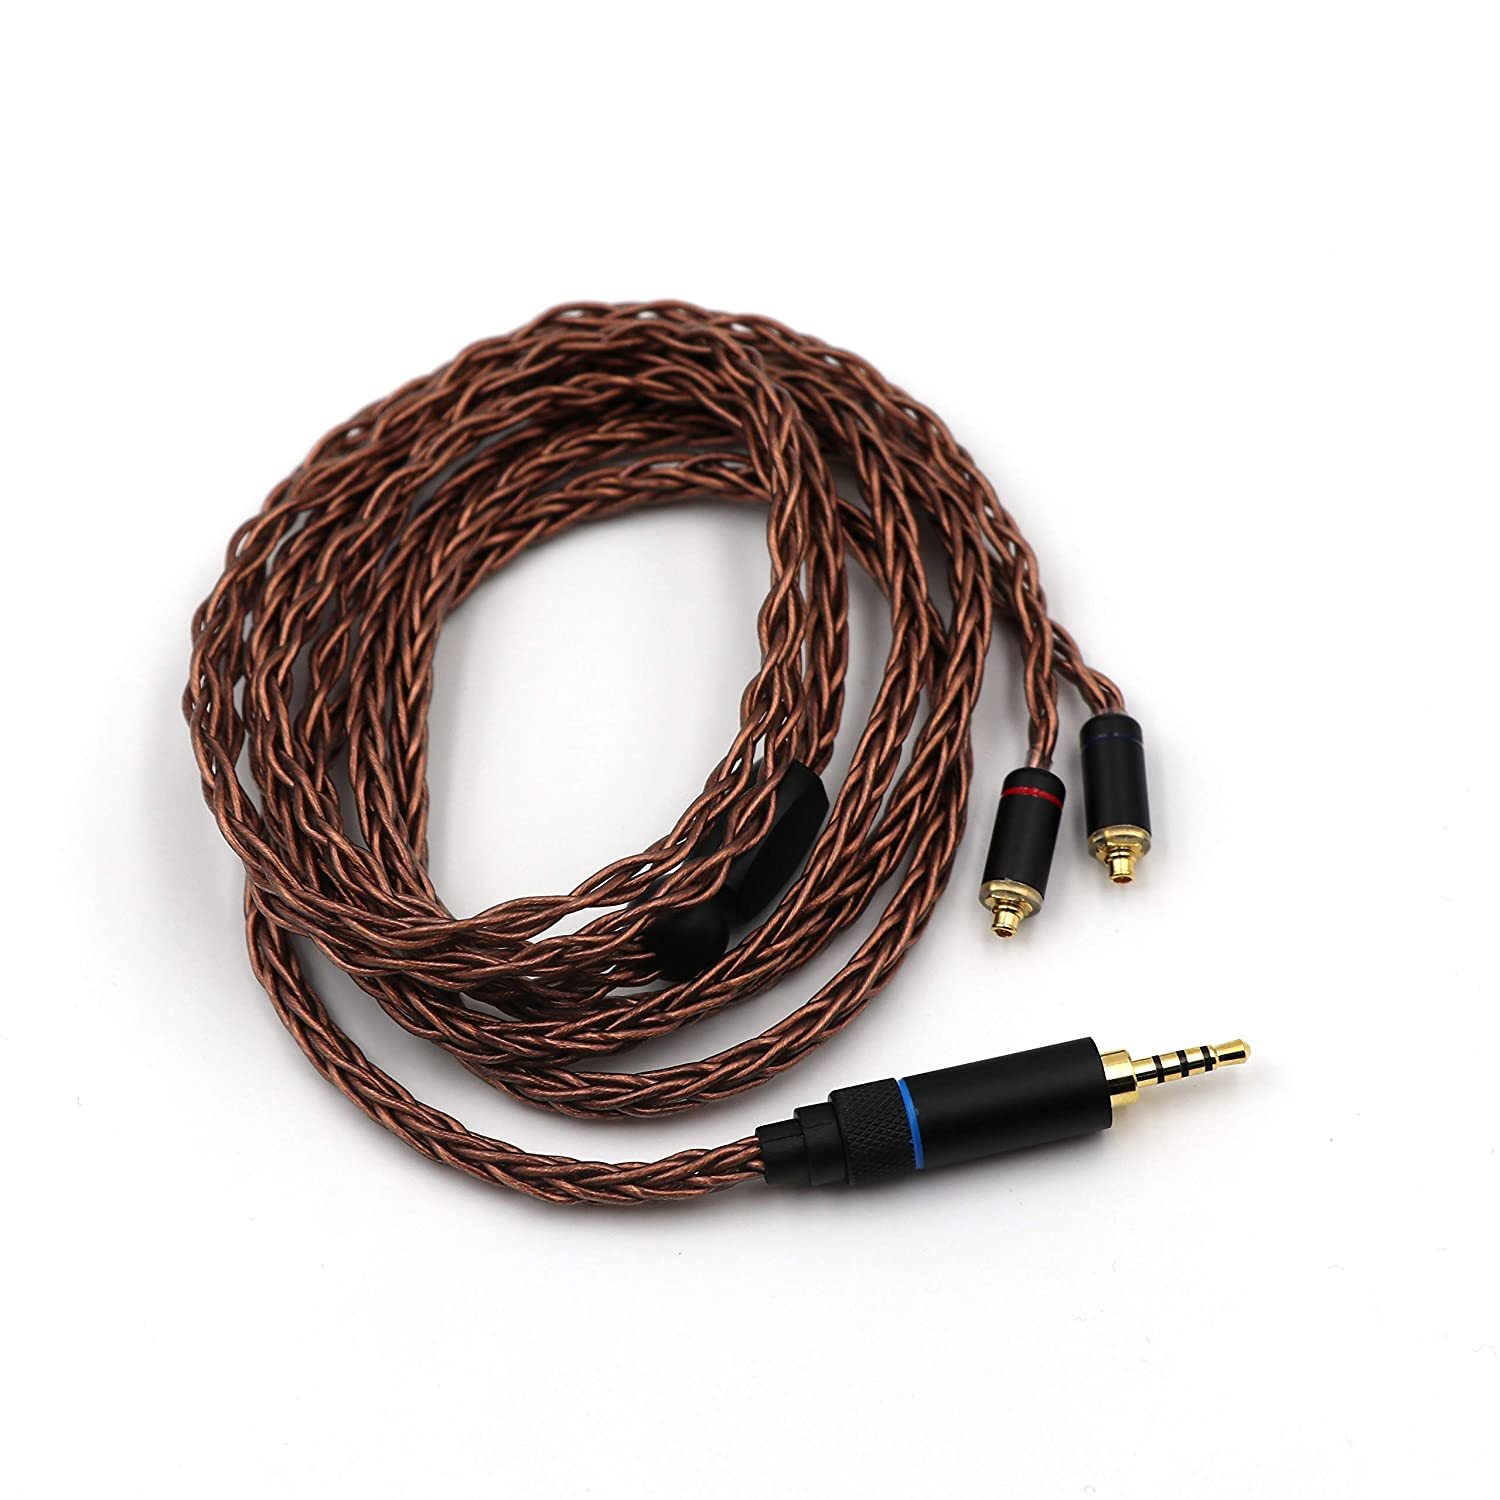 Amazon.com: Linsoul HC-08 HiFi OCC 8 Strands 19 Core - Cable ...